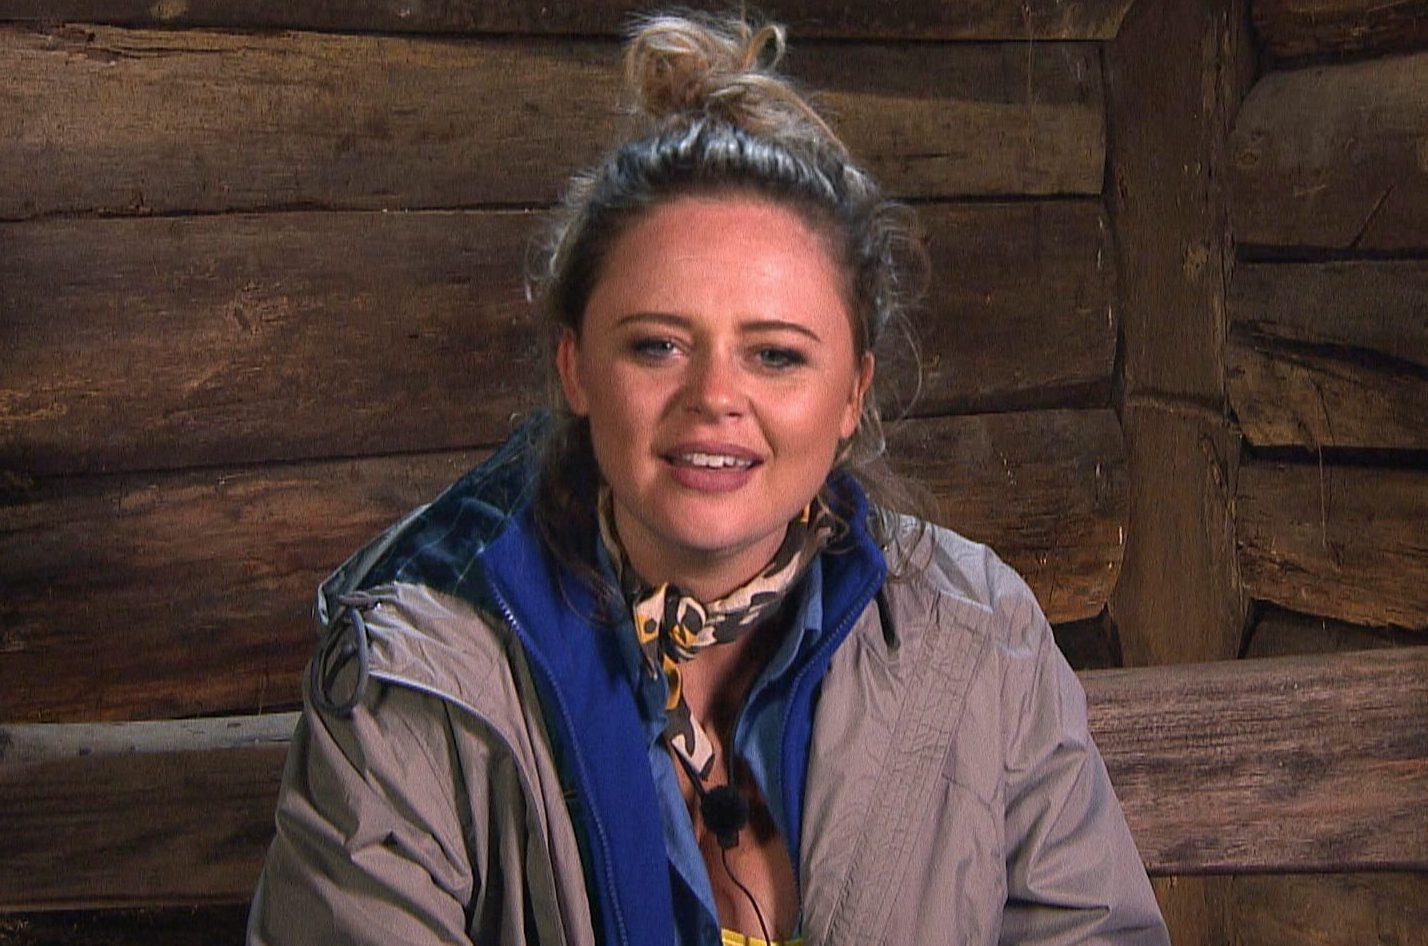 STRICT EMBARGO - NOT TO BE USED BEFORE 22:45 GMT, 18 NOV 2018 - EDITORIAL USE ONLY Mandatory Credit: Photo by ITV/REX/Shutterstock (9982887ge) Snake Rock Camp Arrivals - Emily Atack 'I'm a Celebrity...Get Me Out of Here!' TV Show, Series 18, Australia - 18 Nov 2018